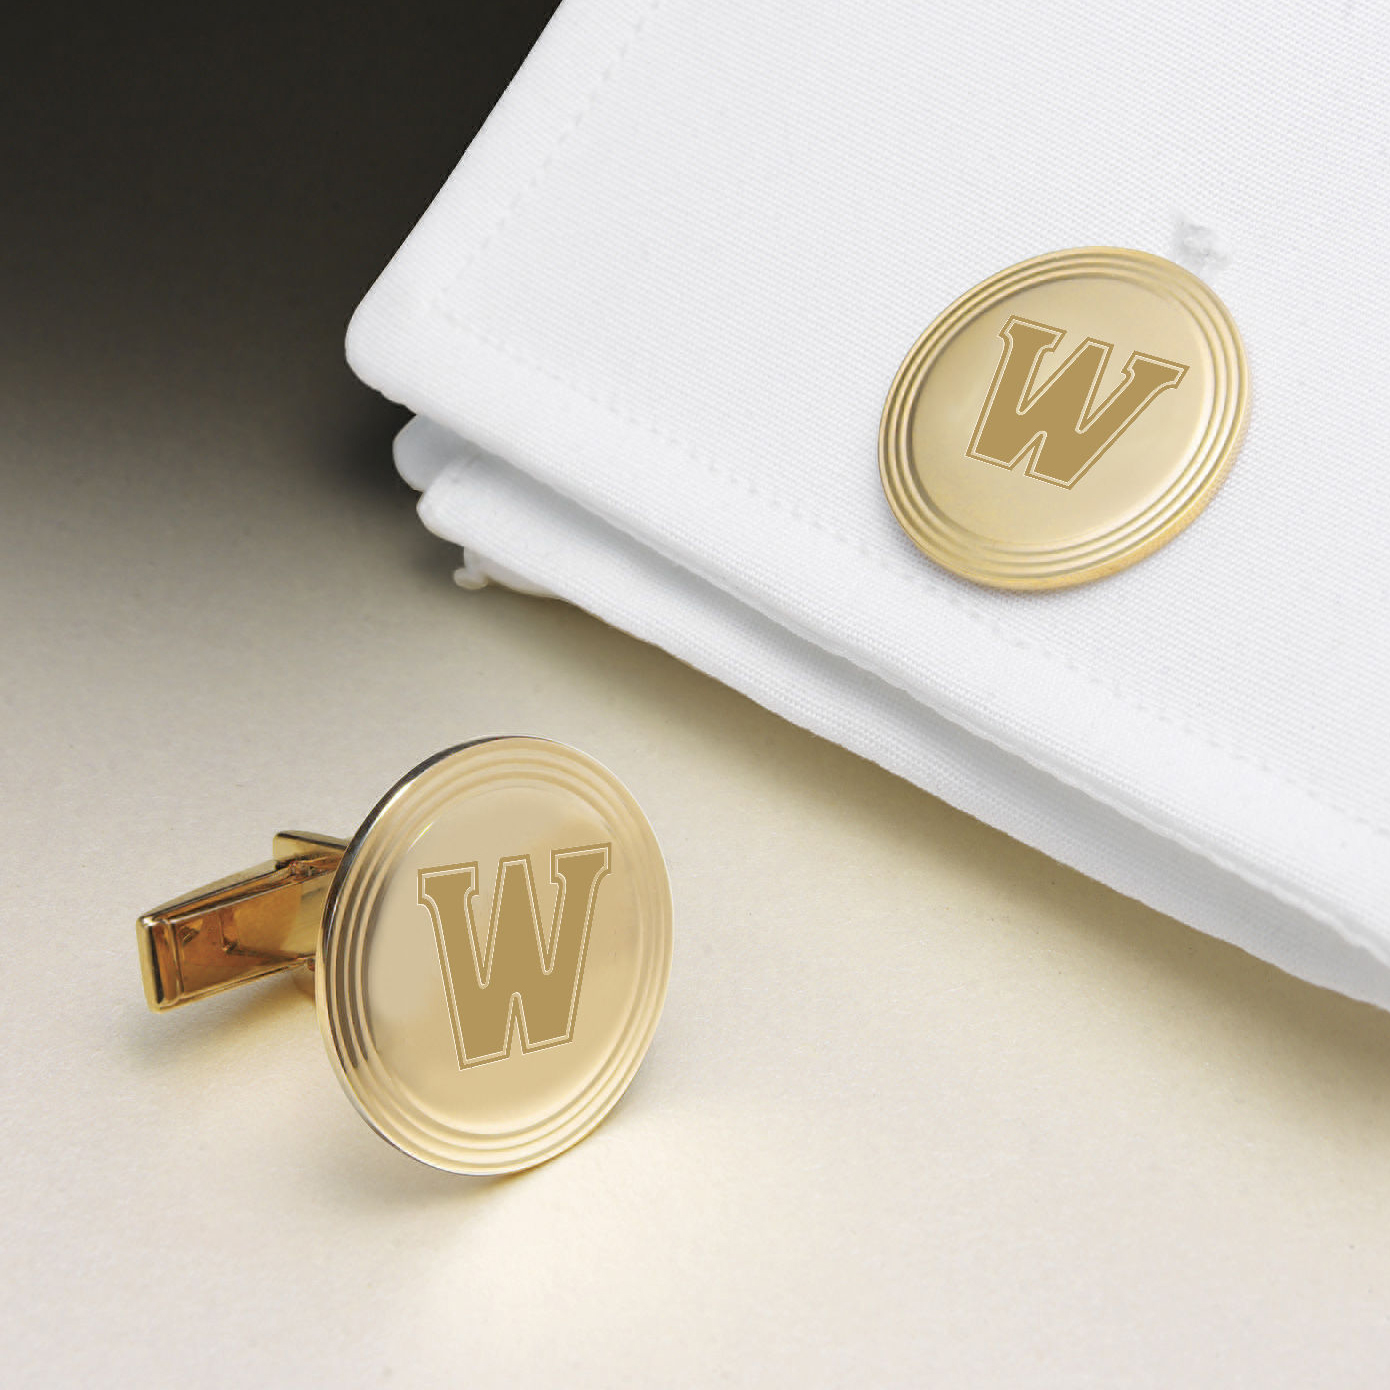 Williams College 14K Gold Cufflinks